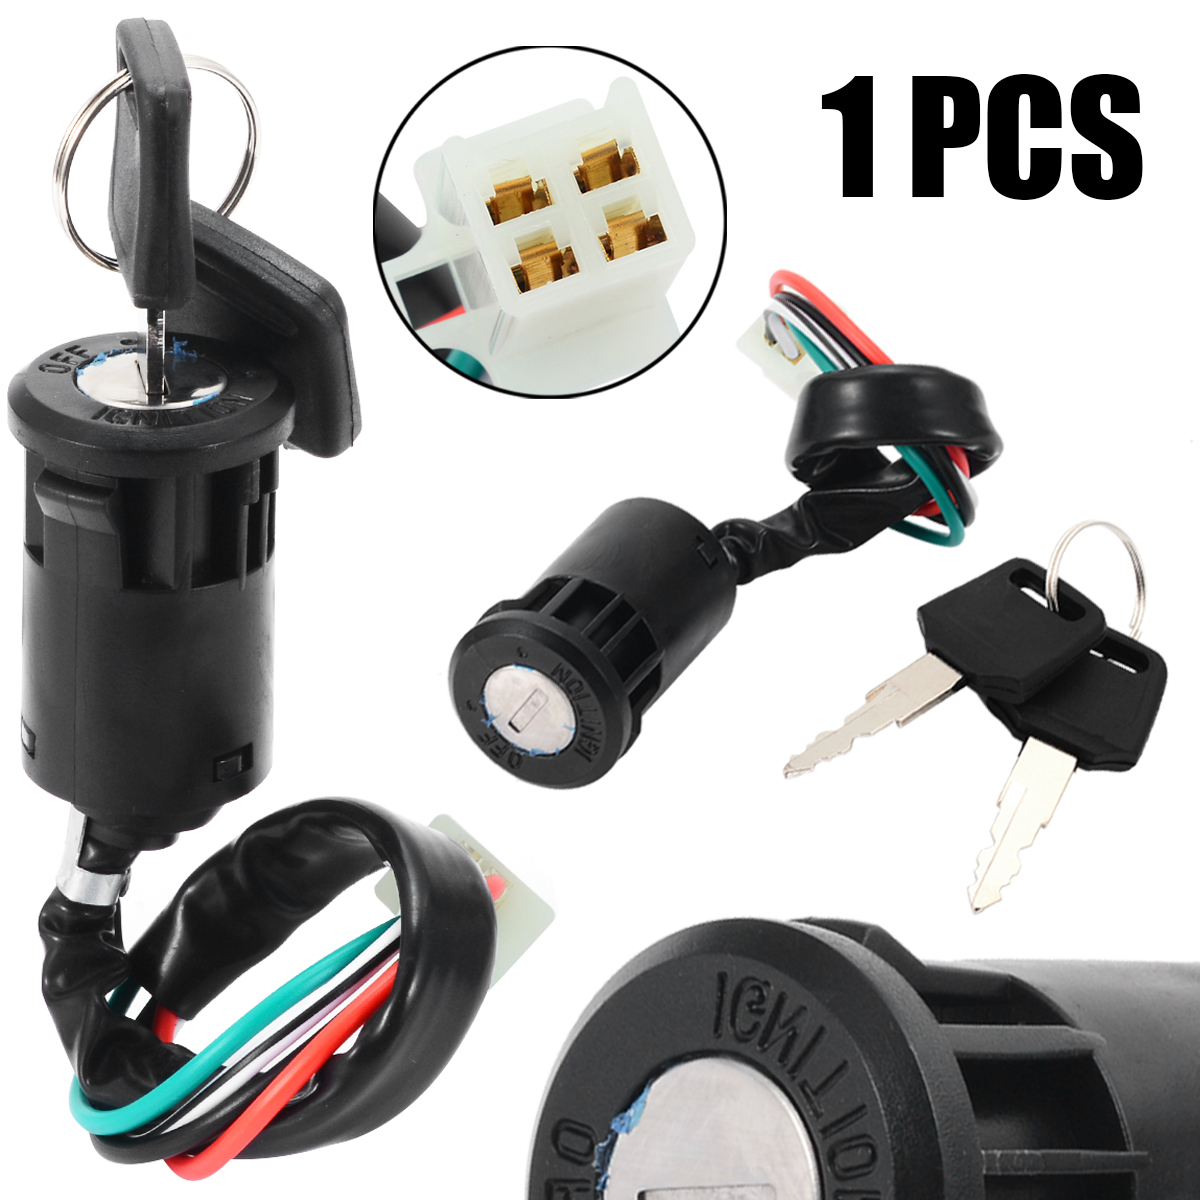 10pcs 4 Wire Ignition Key Lock Switch with 2 keys for KTM motorcycles /& ATV/'s